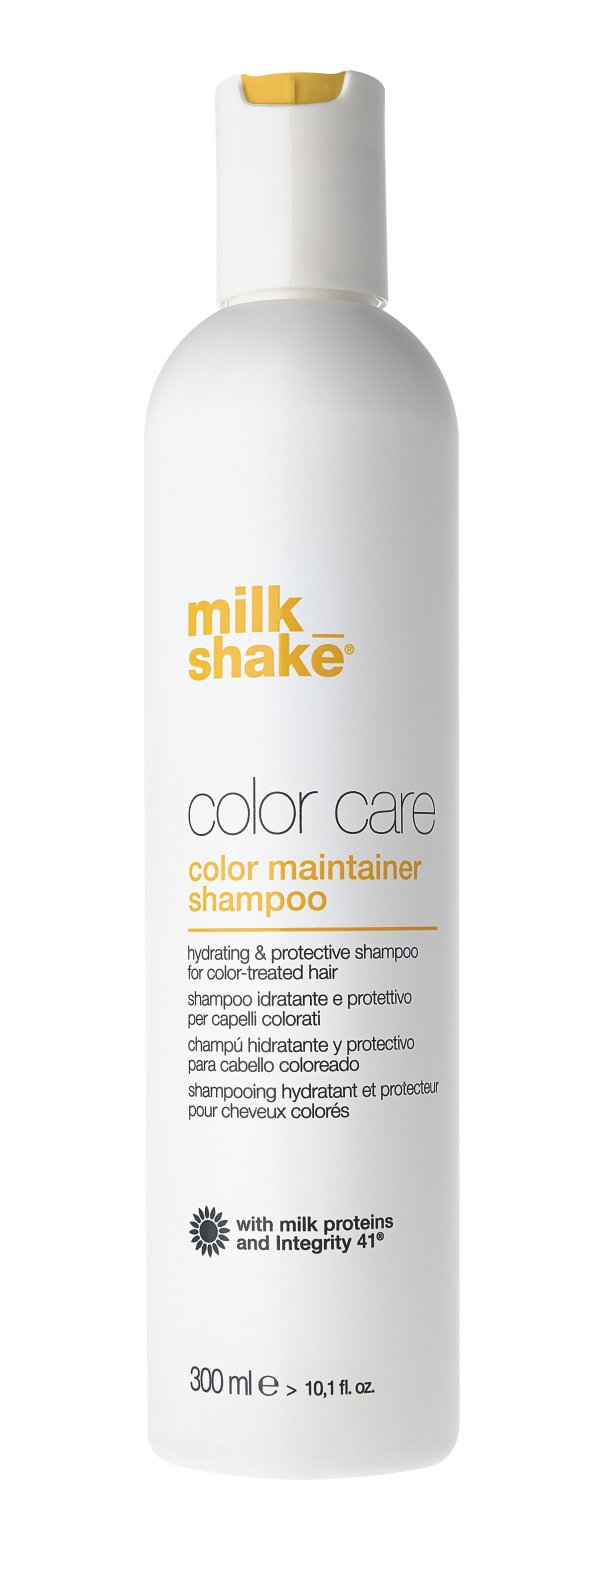 milk_shake Color Care Shampoo